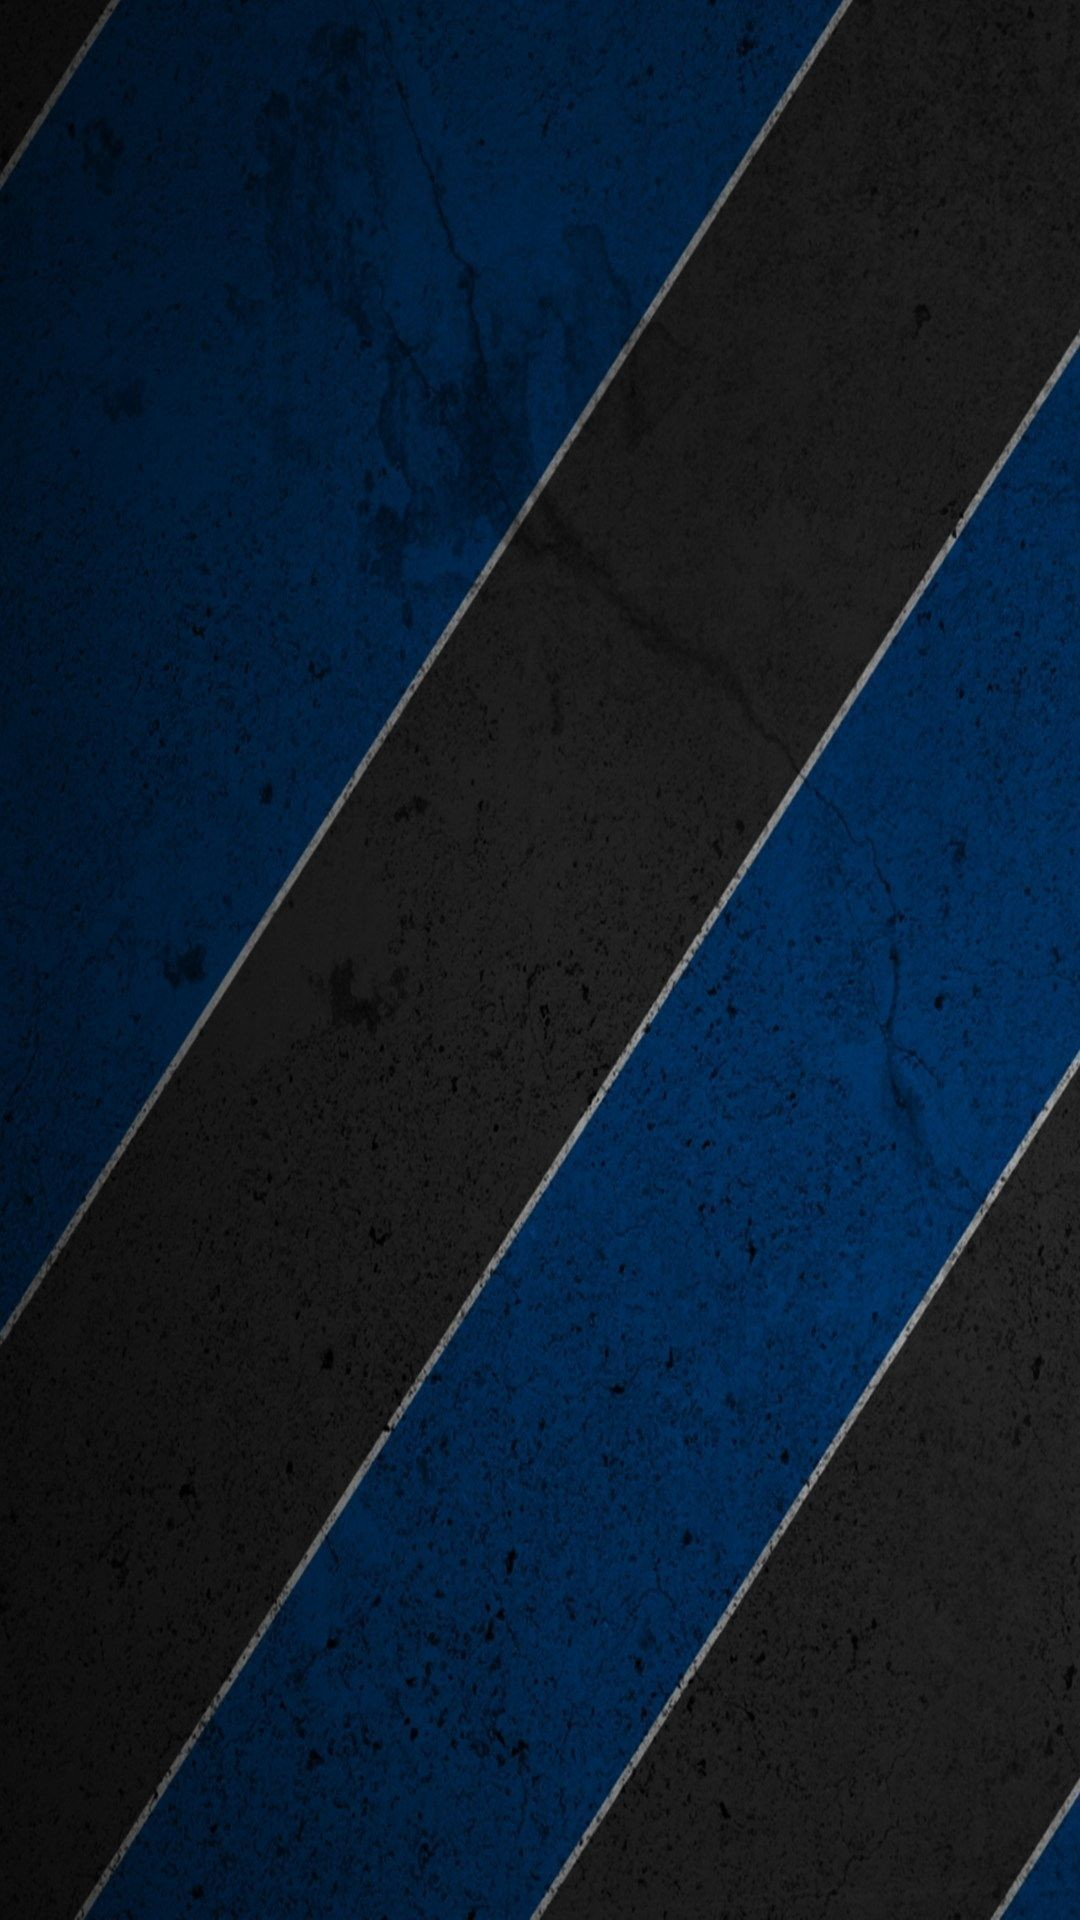 Android Abstract wallpaper full-hd-black and blue .